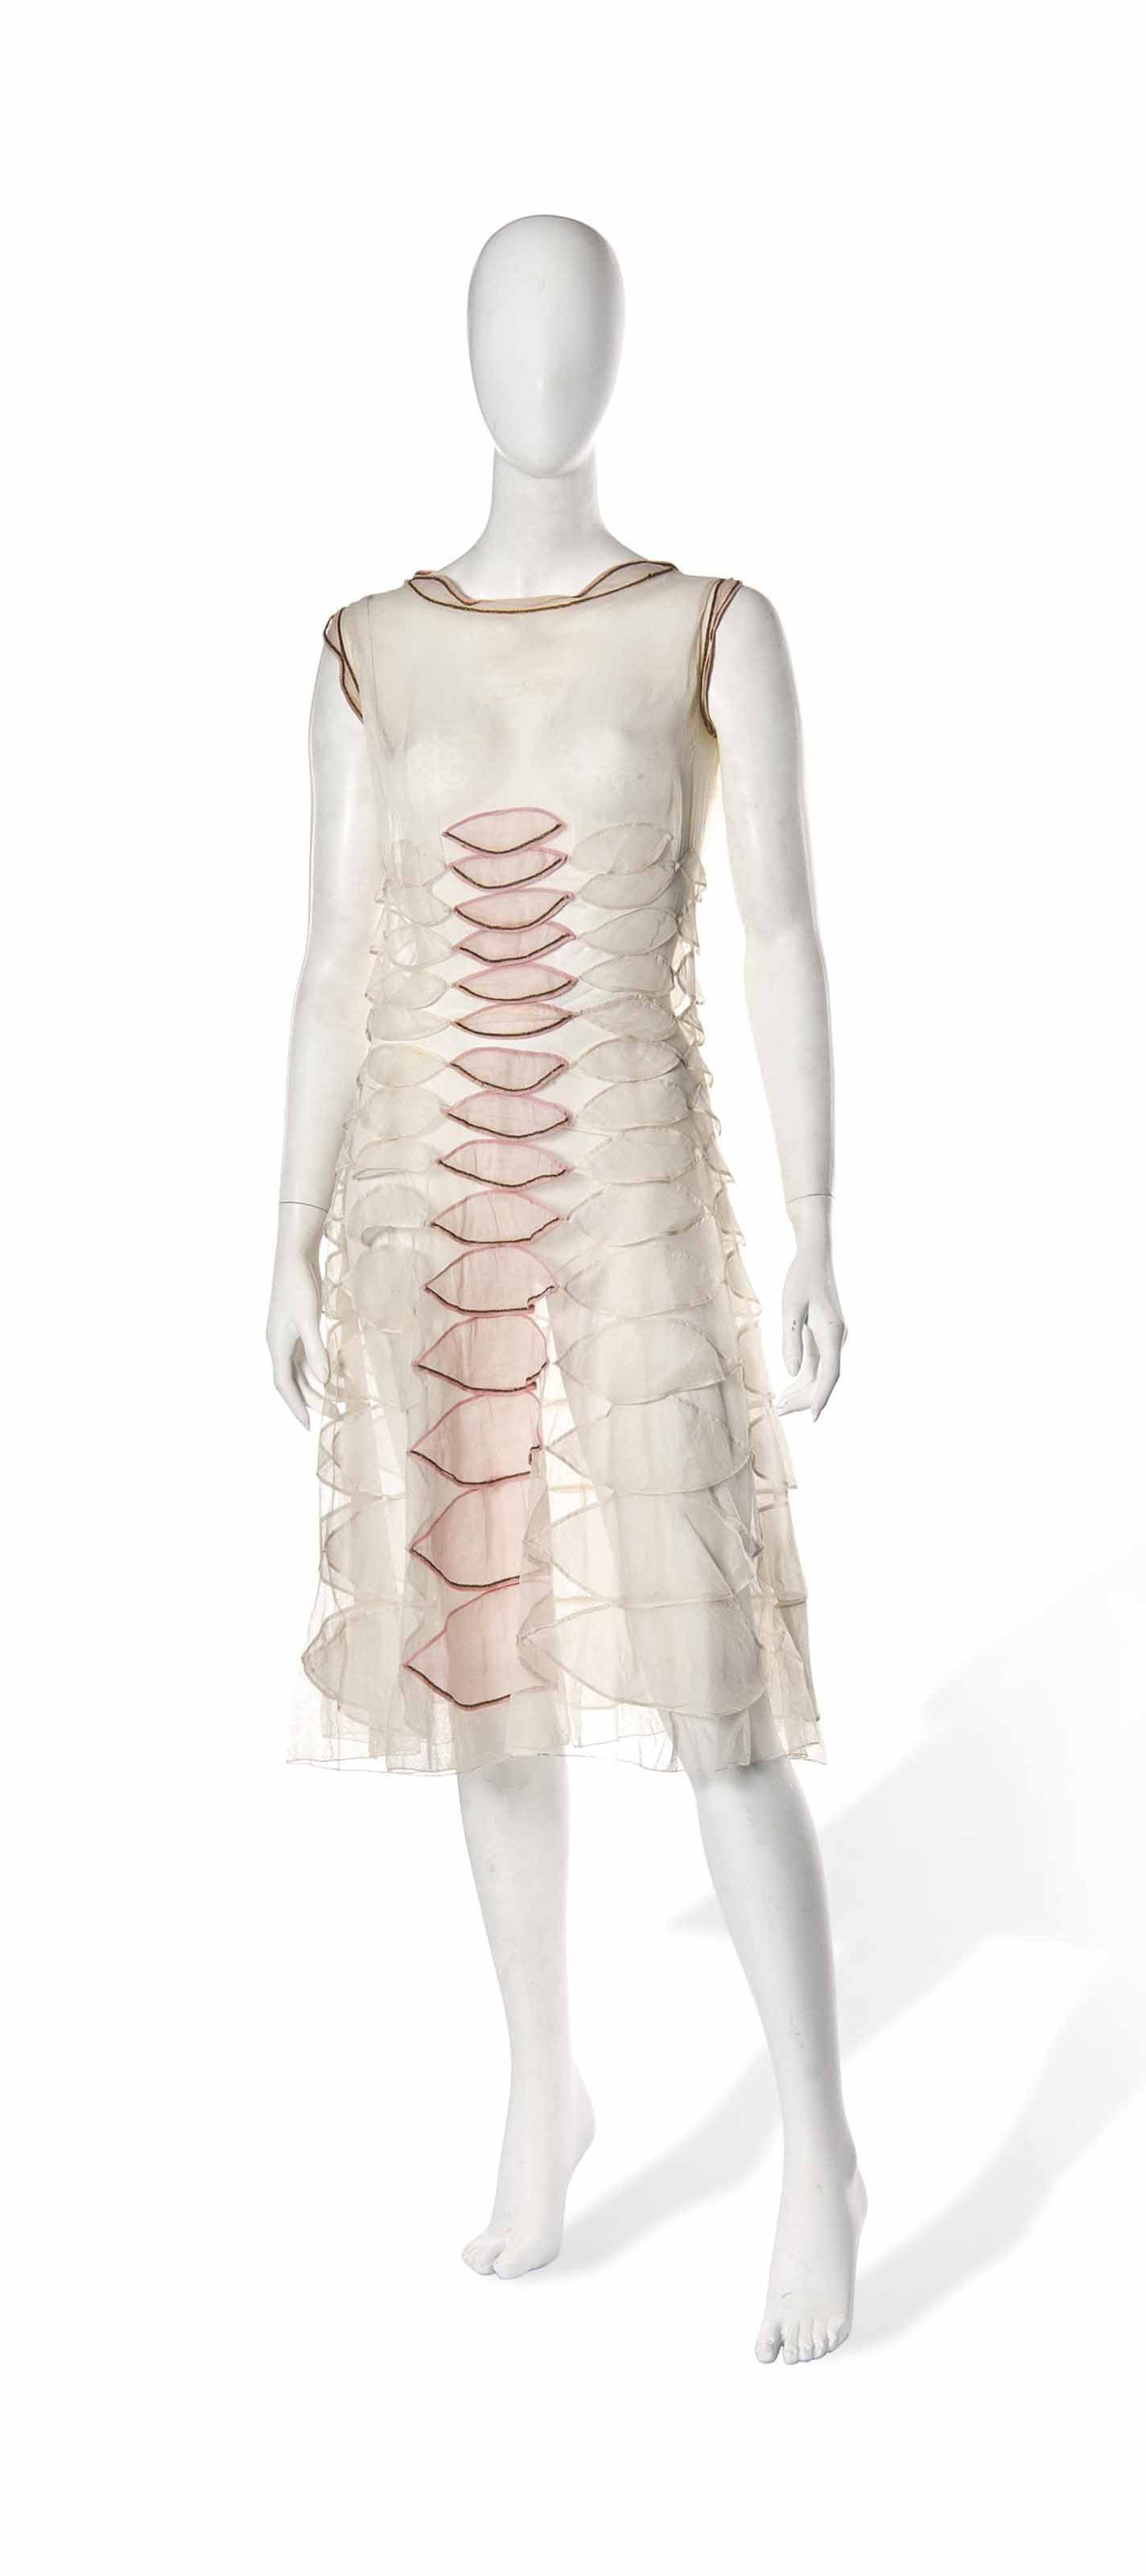 A JEANNE LANVIN COCKTAIL DRESS OF WHITE ORGANZA